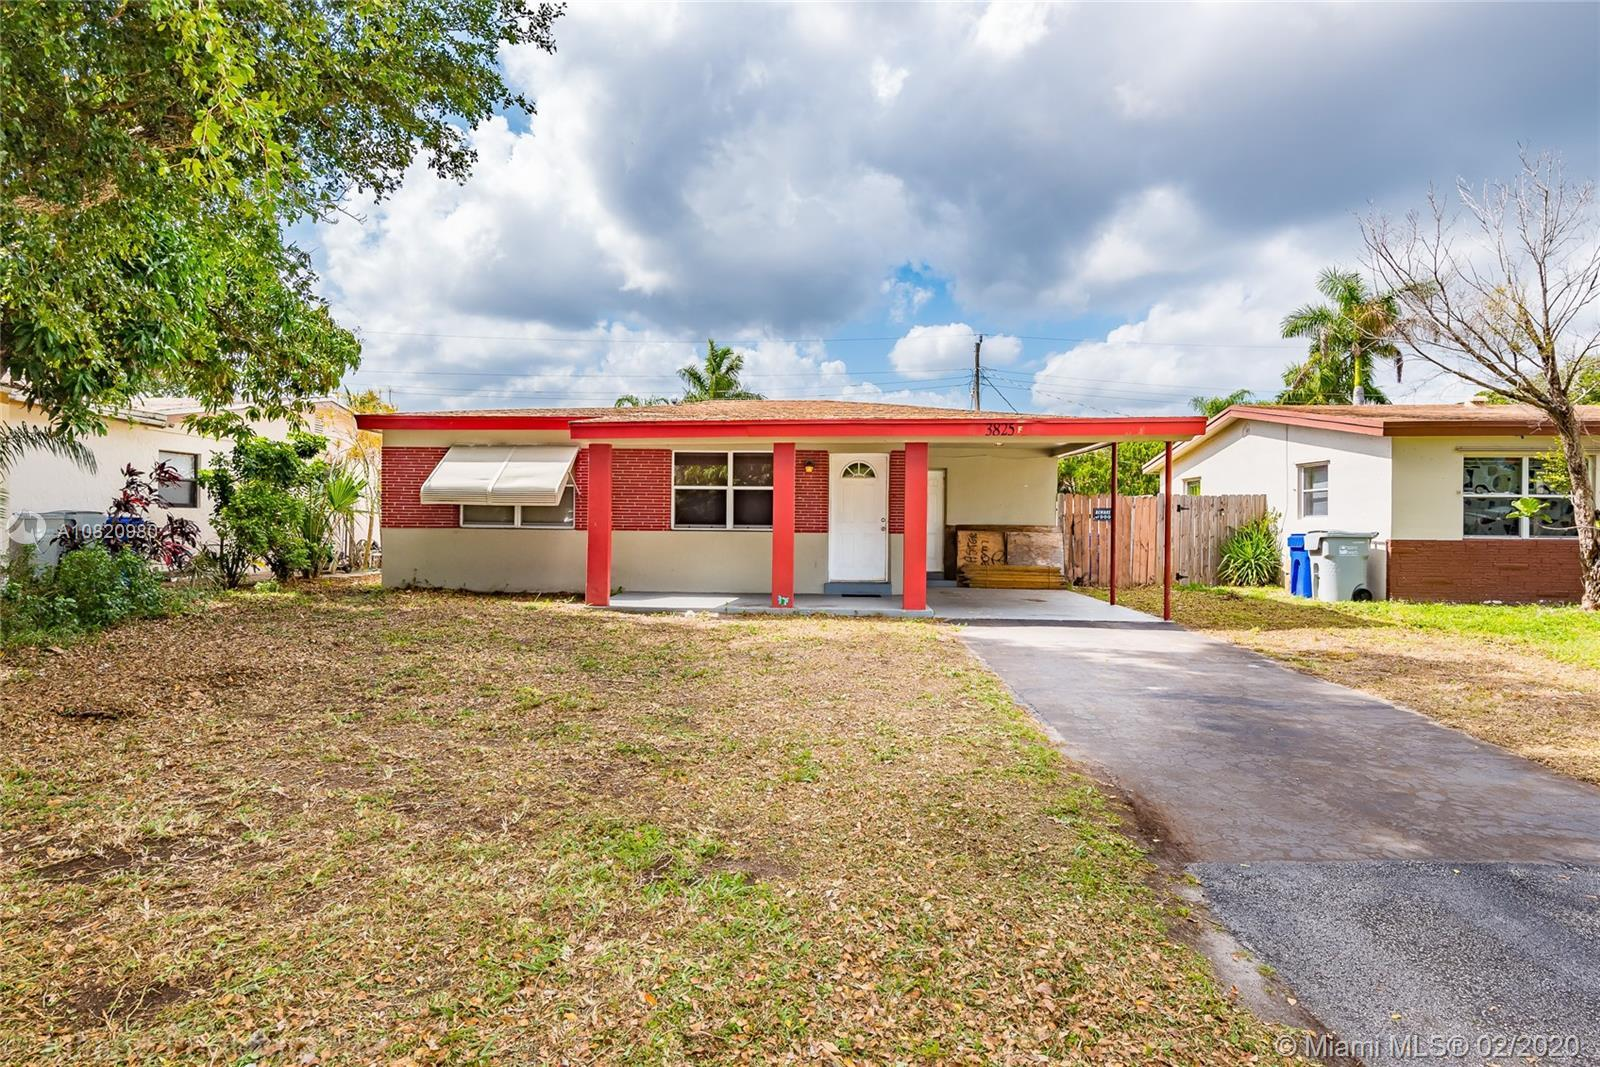 PERFECT FIRST TIME BUYER HOME! This is a Great Affordable East Pompano Beach Location, Minutes to Be